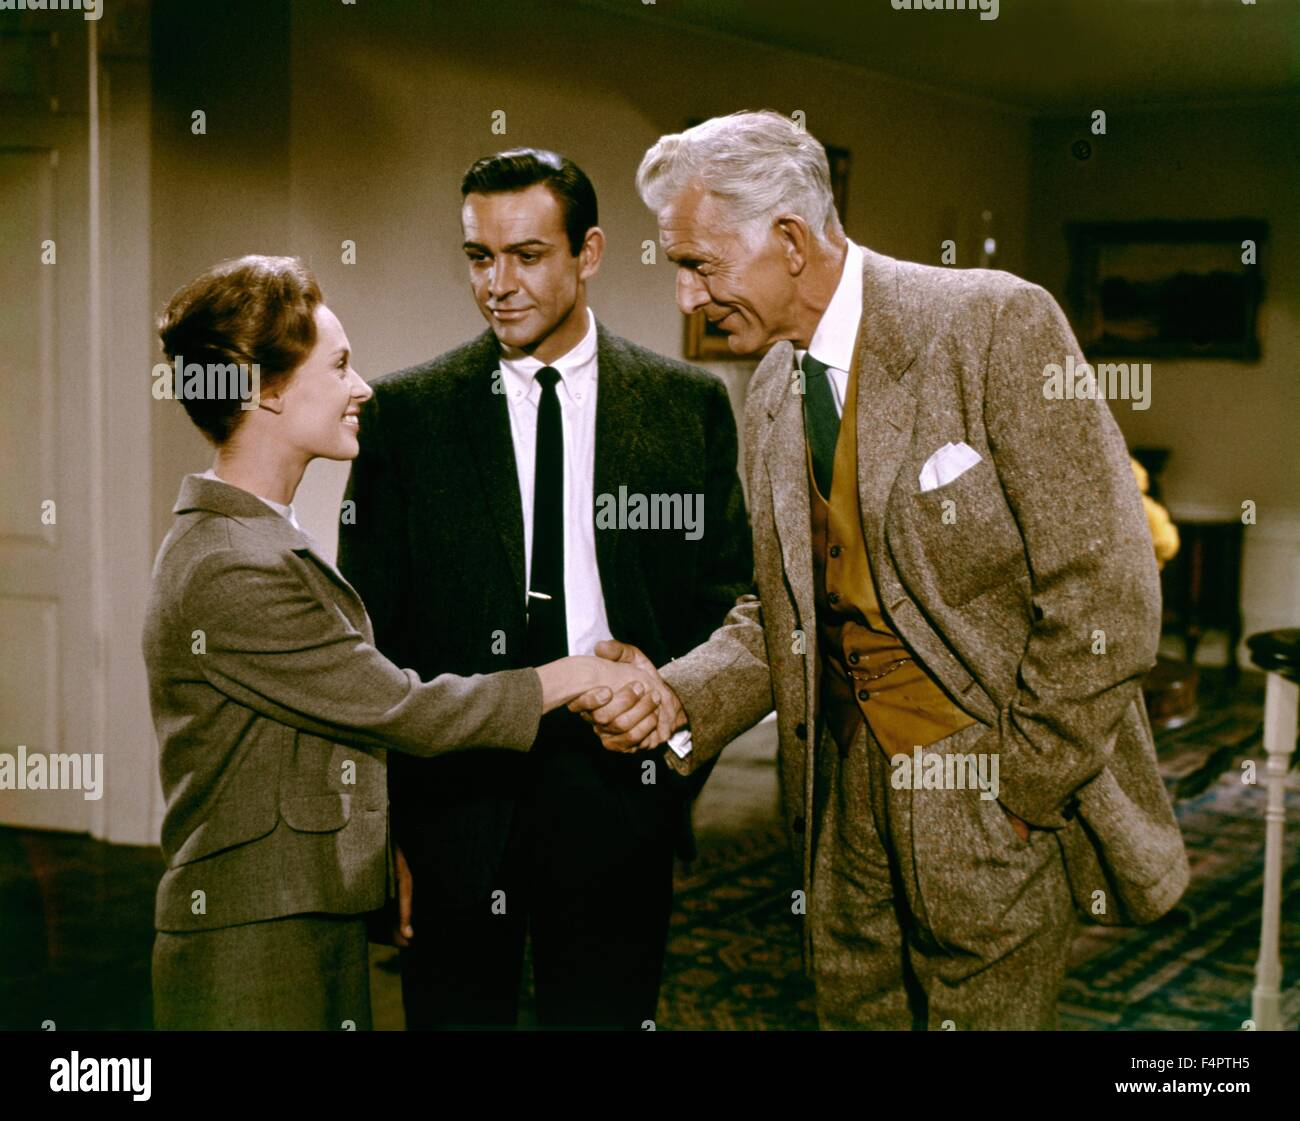 Alan Napier High Resolution Stock Photography And Images Alamy Alan william napierclavering 7 january 1903 8 august 1988 better known as alan napier was an english actor after a decade in west end theatres he had. https www alamy com stock photo tippi hedren sean connery and alan napier marnie 1964 directed by 89012705 html